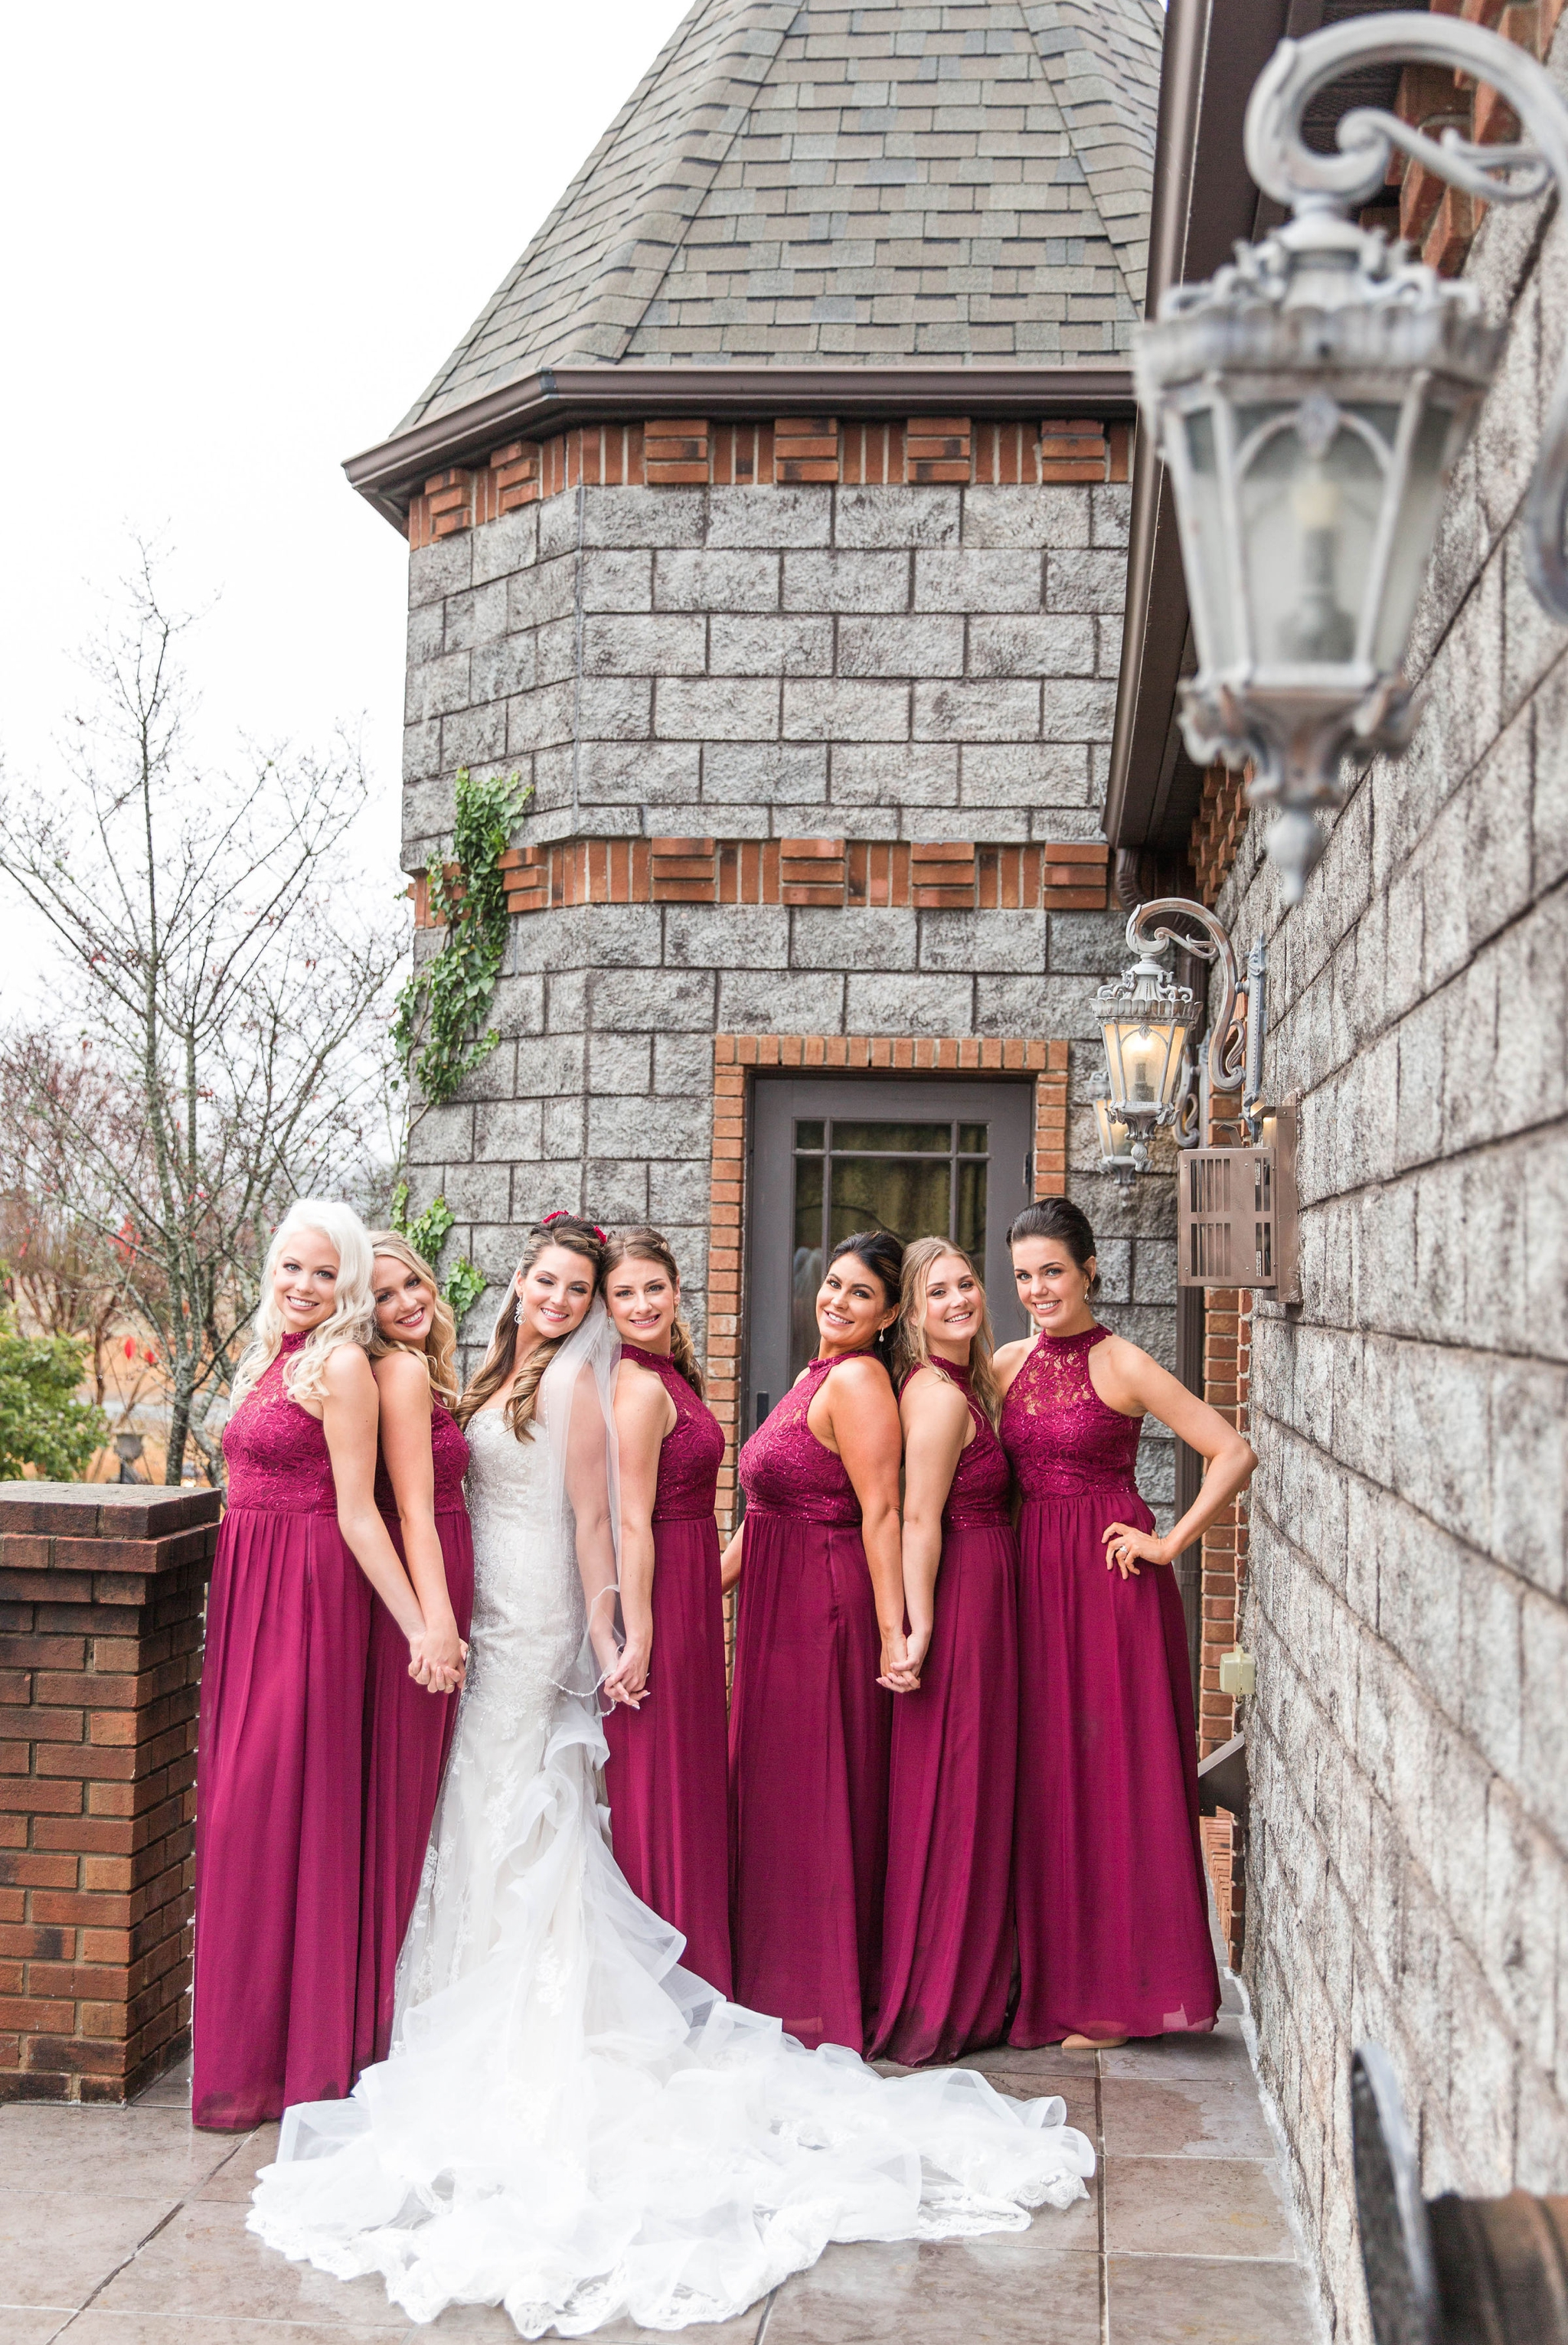 Bride and Bridesmaids Portrait on top of the Castle - Honolulu Oahu Hawaii Wedding Photographer